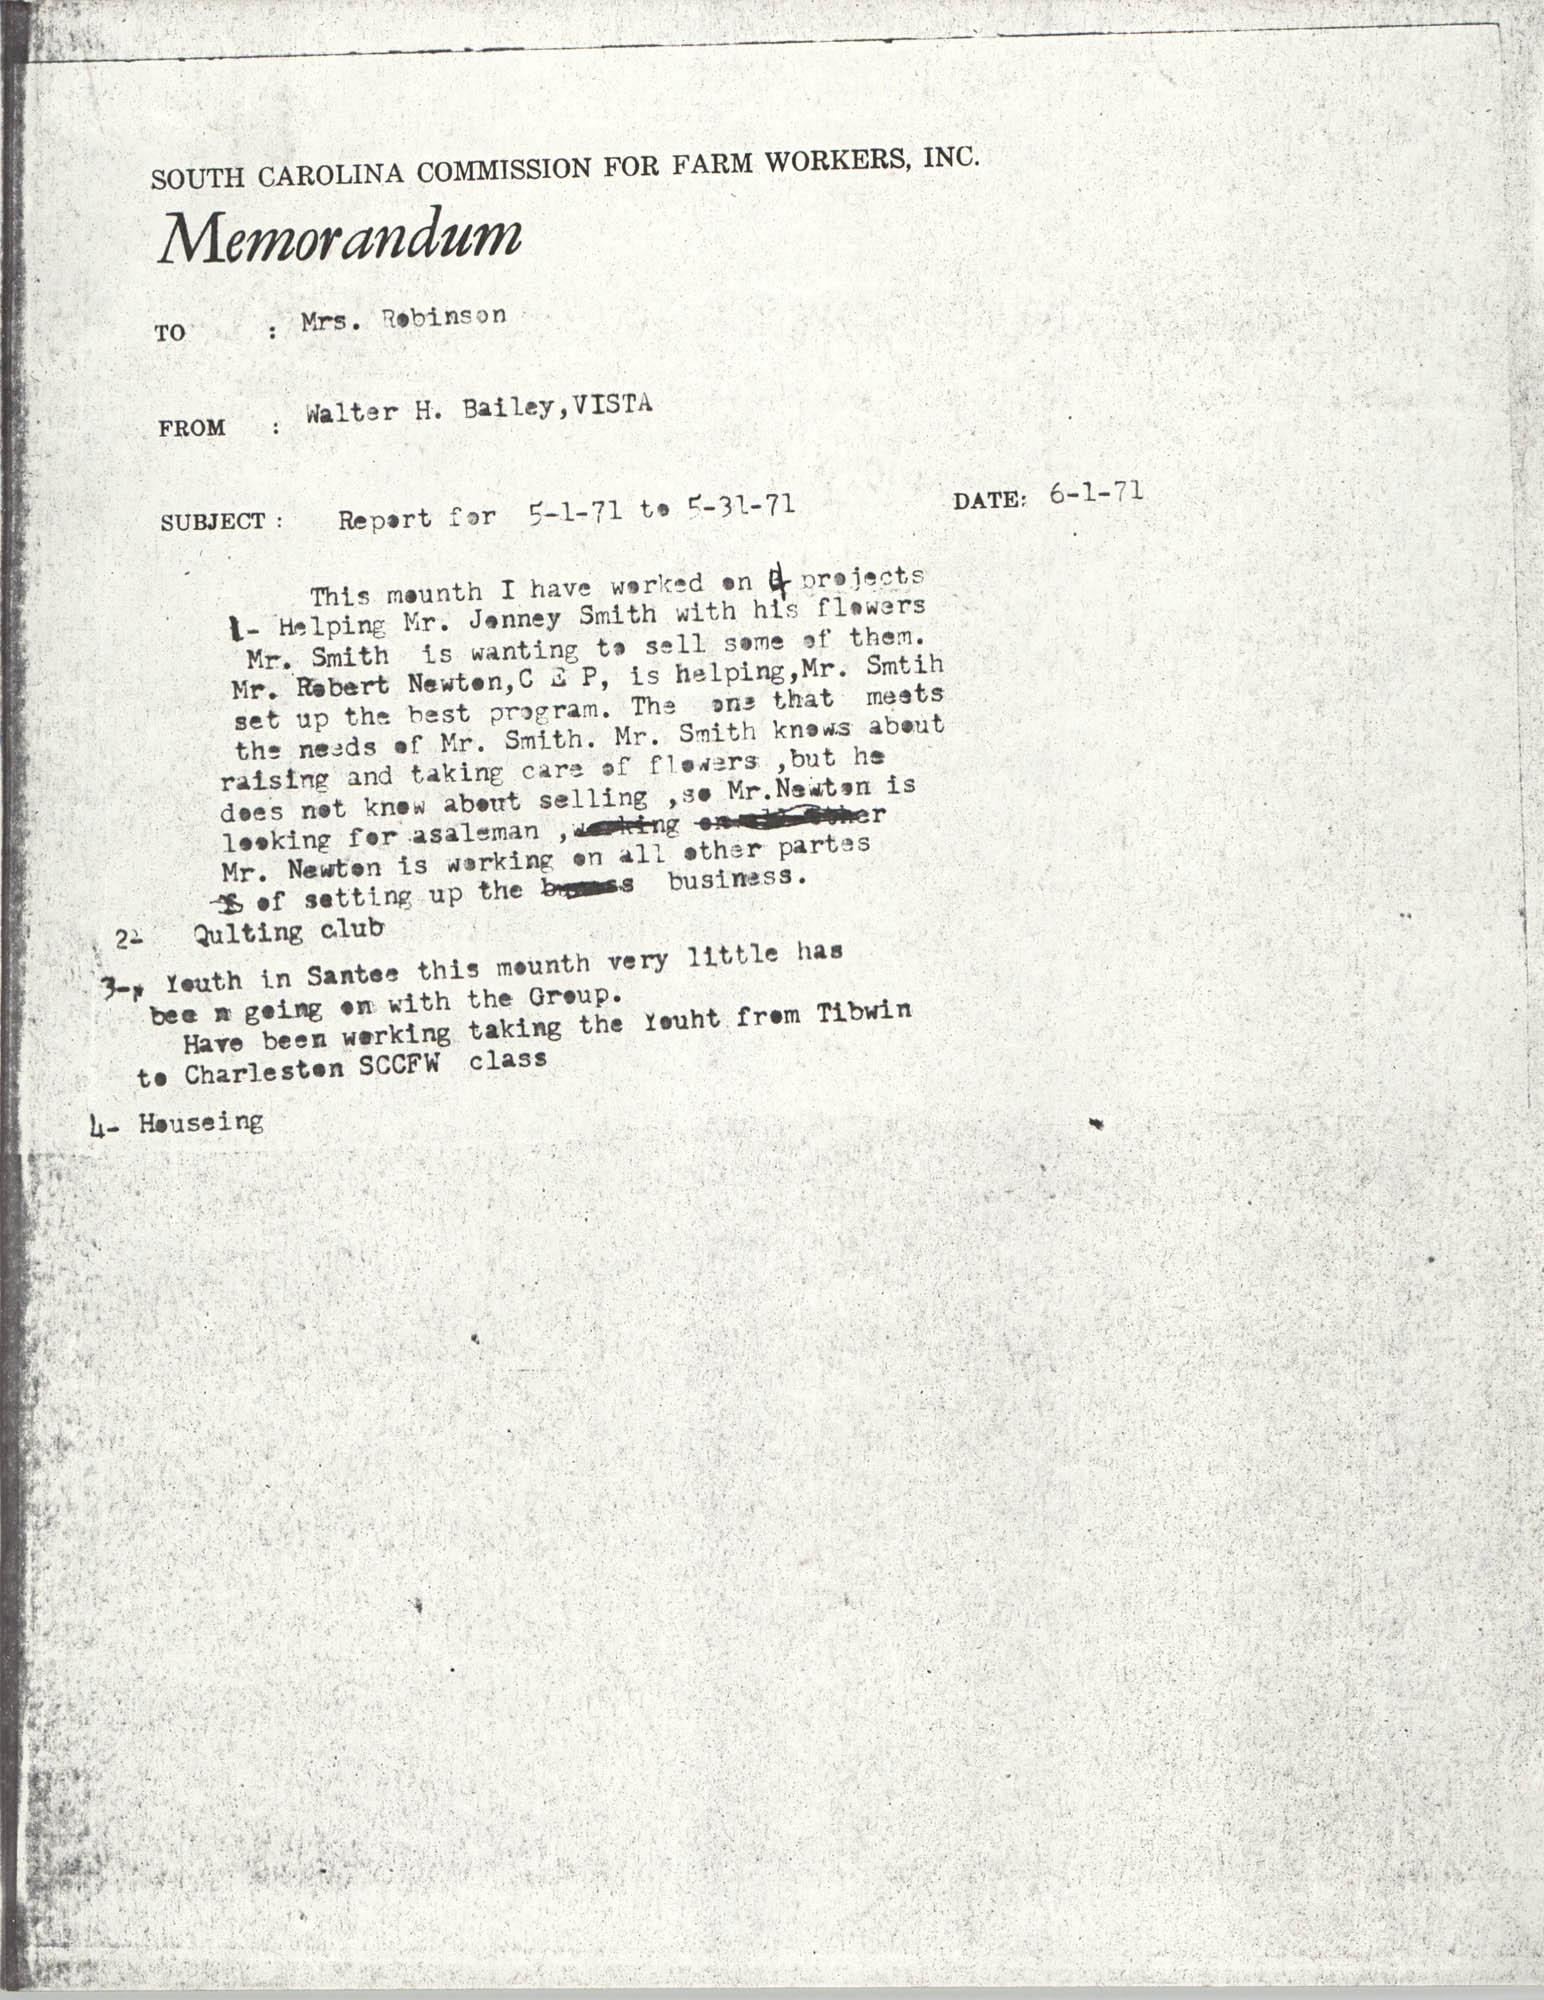 Memorandum from Walter H. Bailey to Bernice Robinson, May 1971